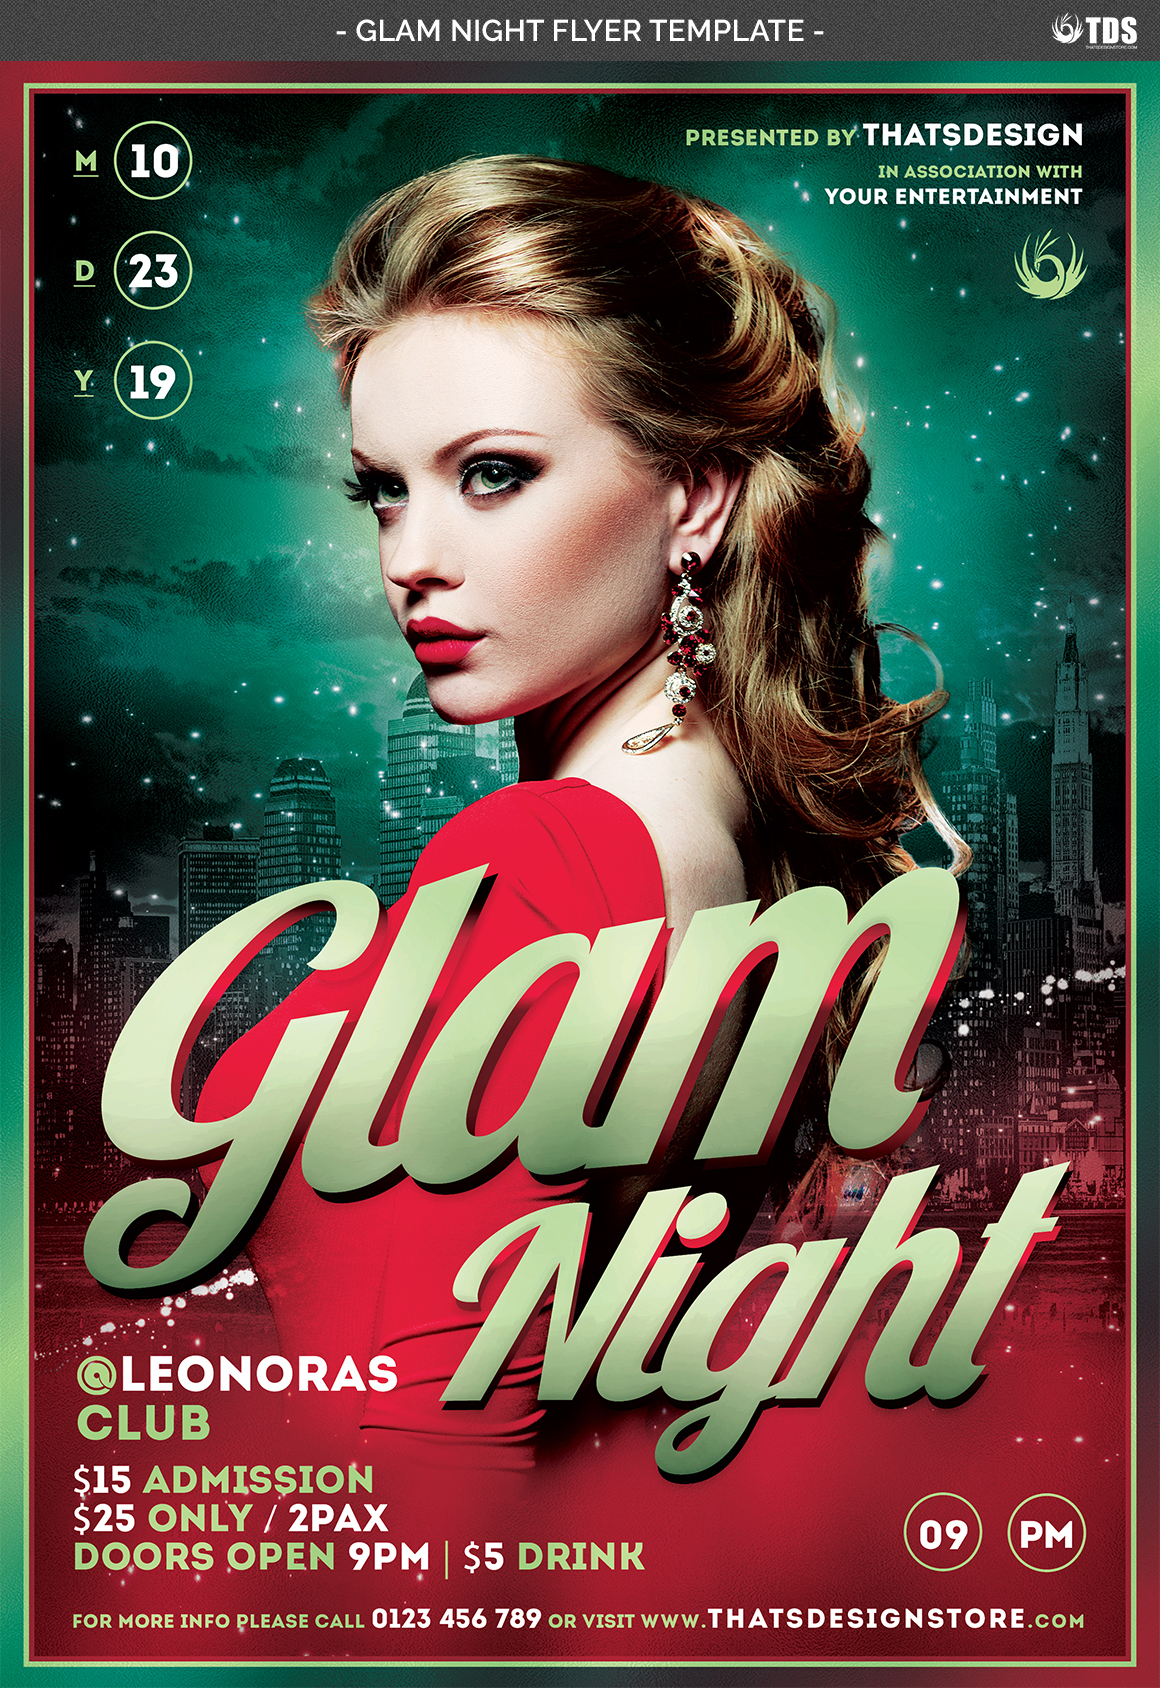 Glam Night Flyer Template example image 4